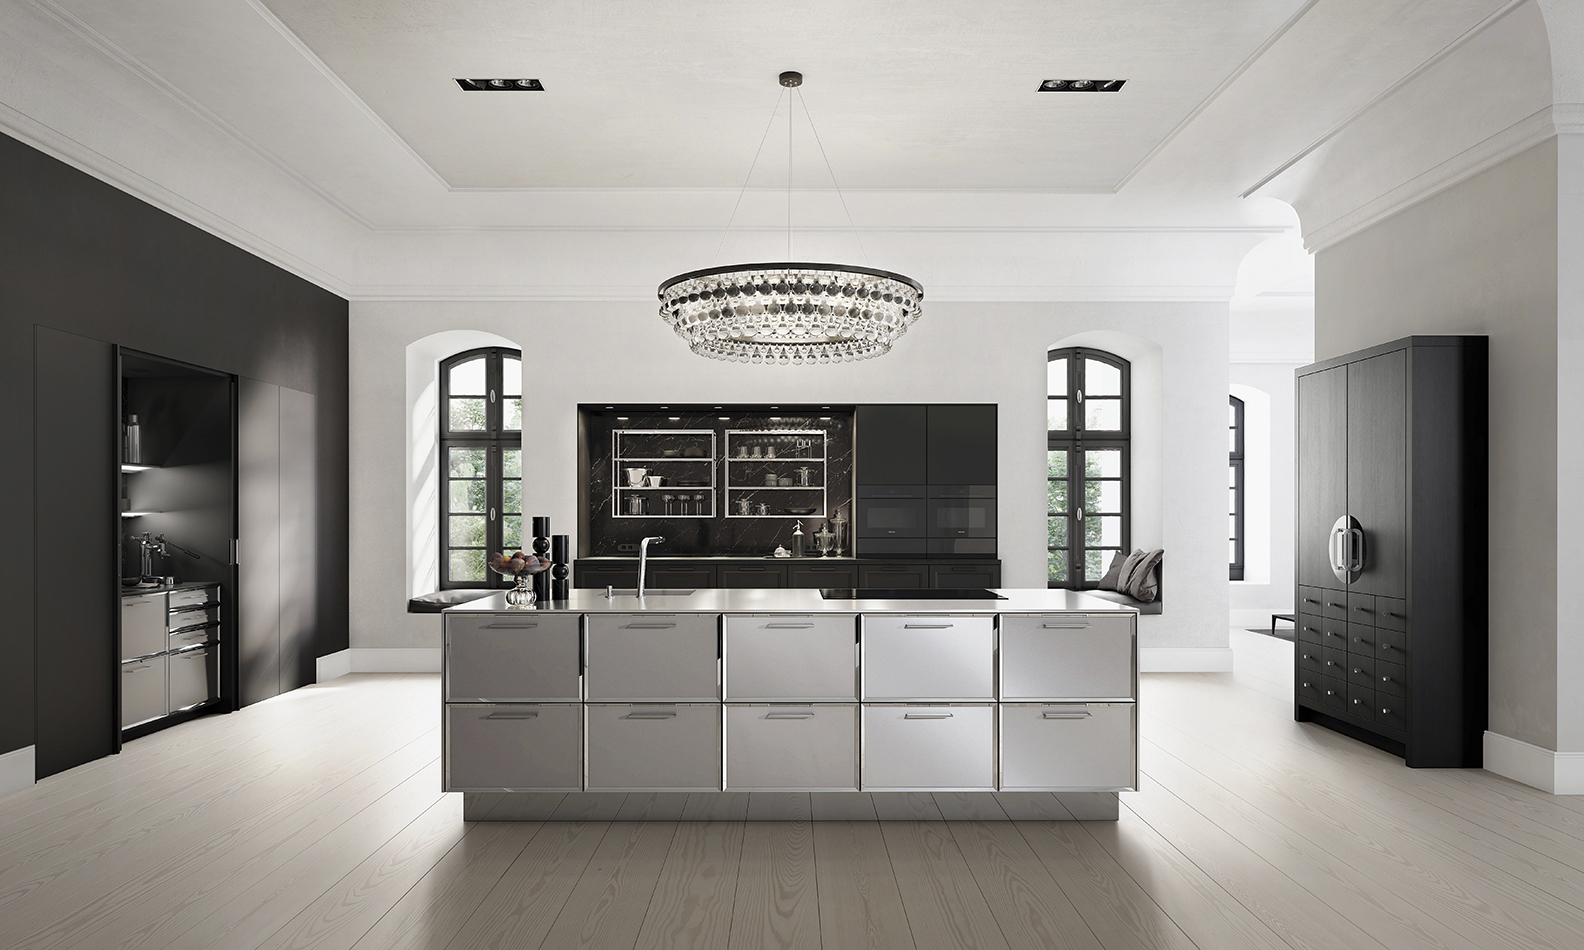 Luring Buyers With On-Trend Kitchen Products | Professional Builder